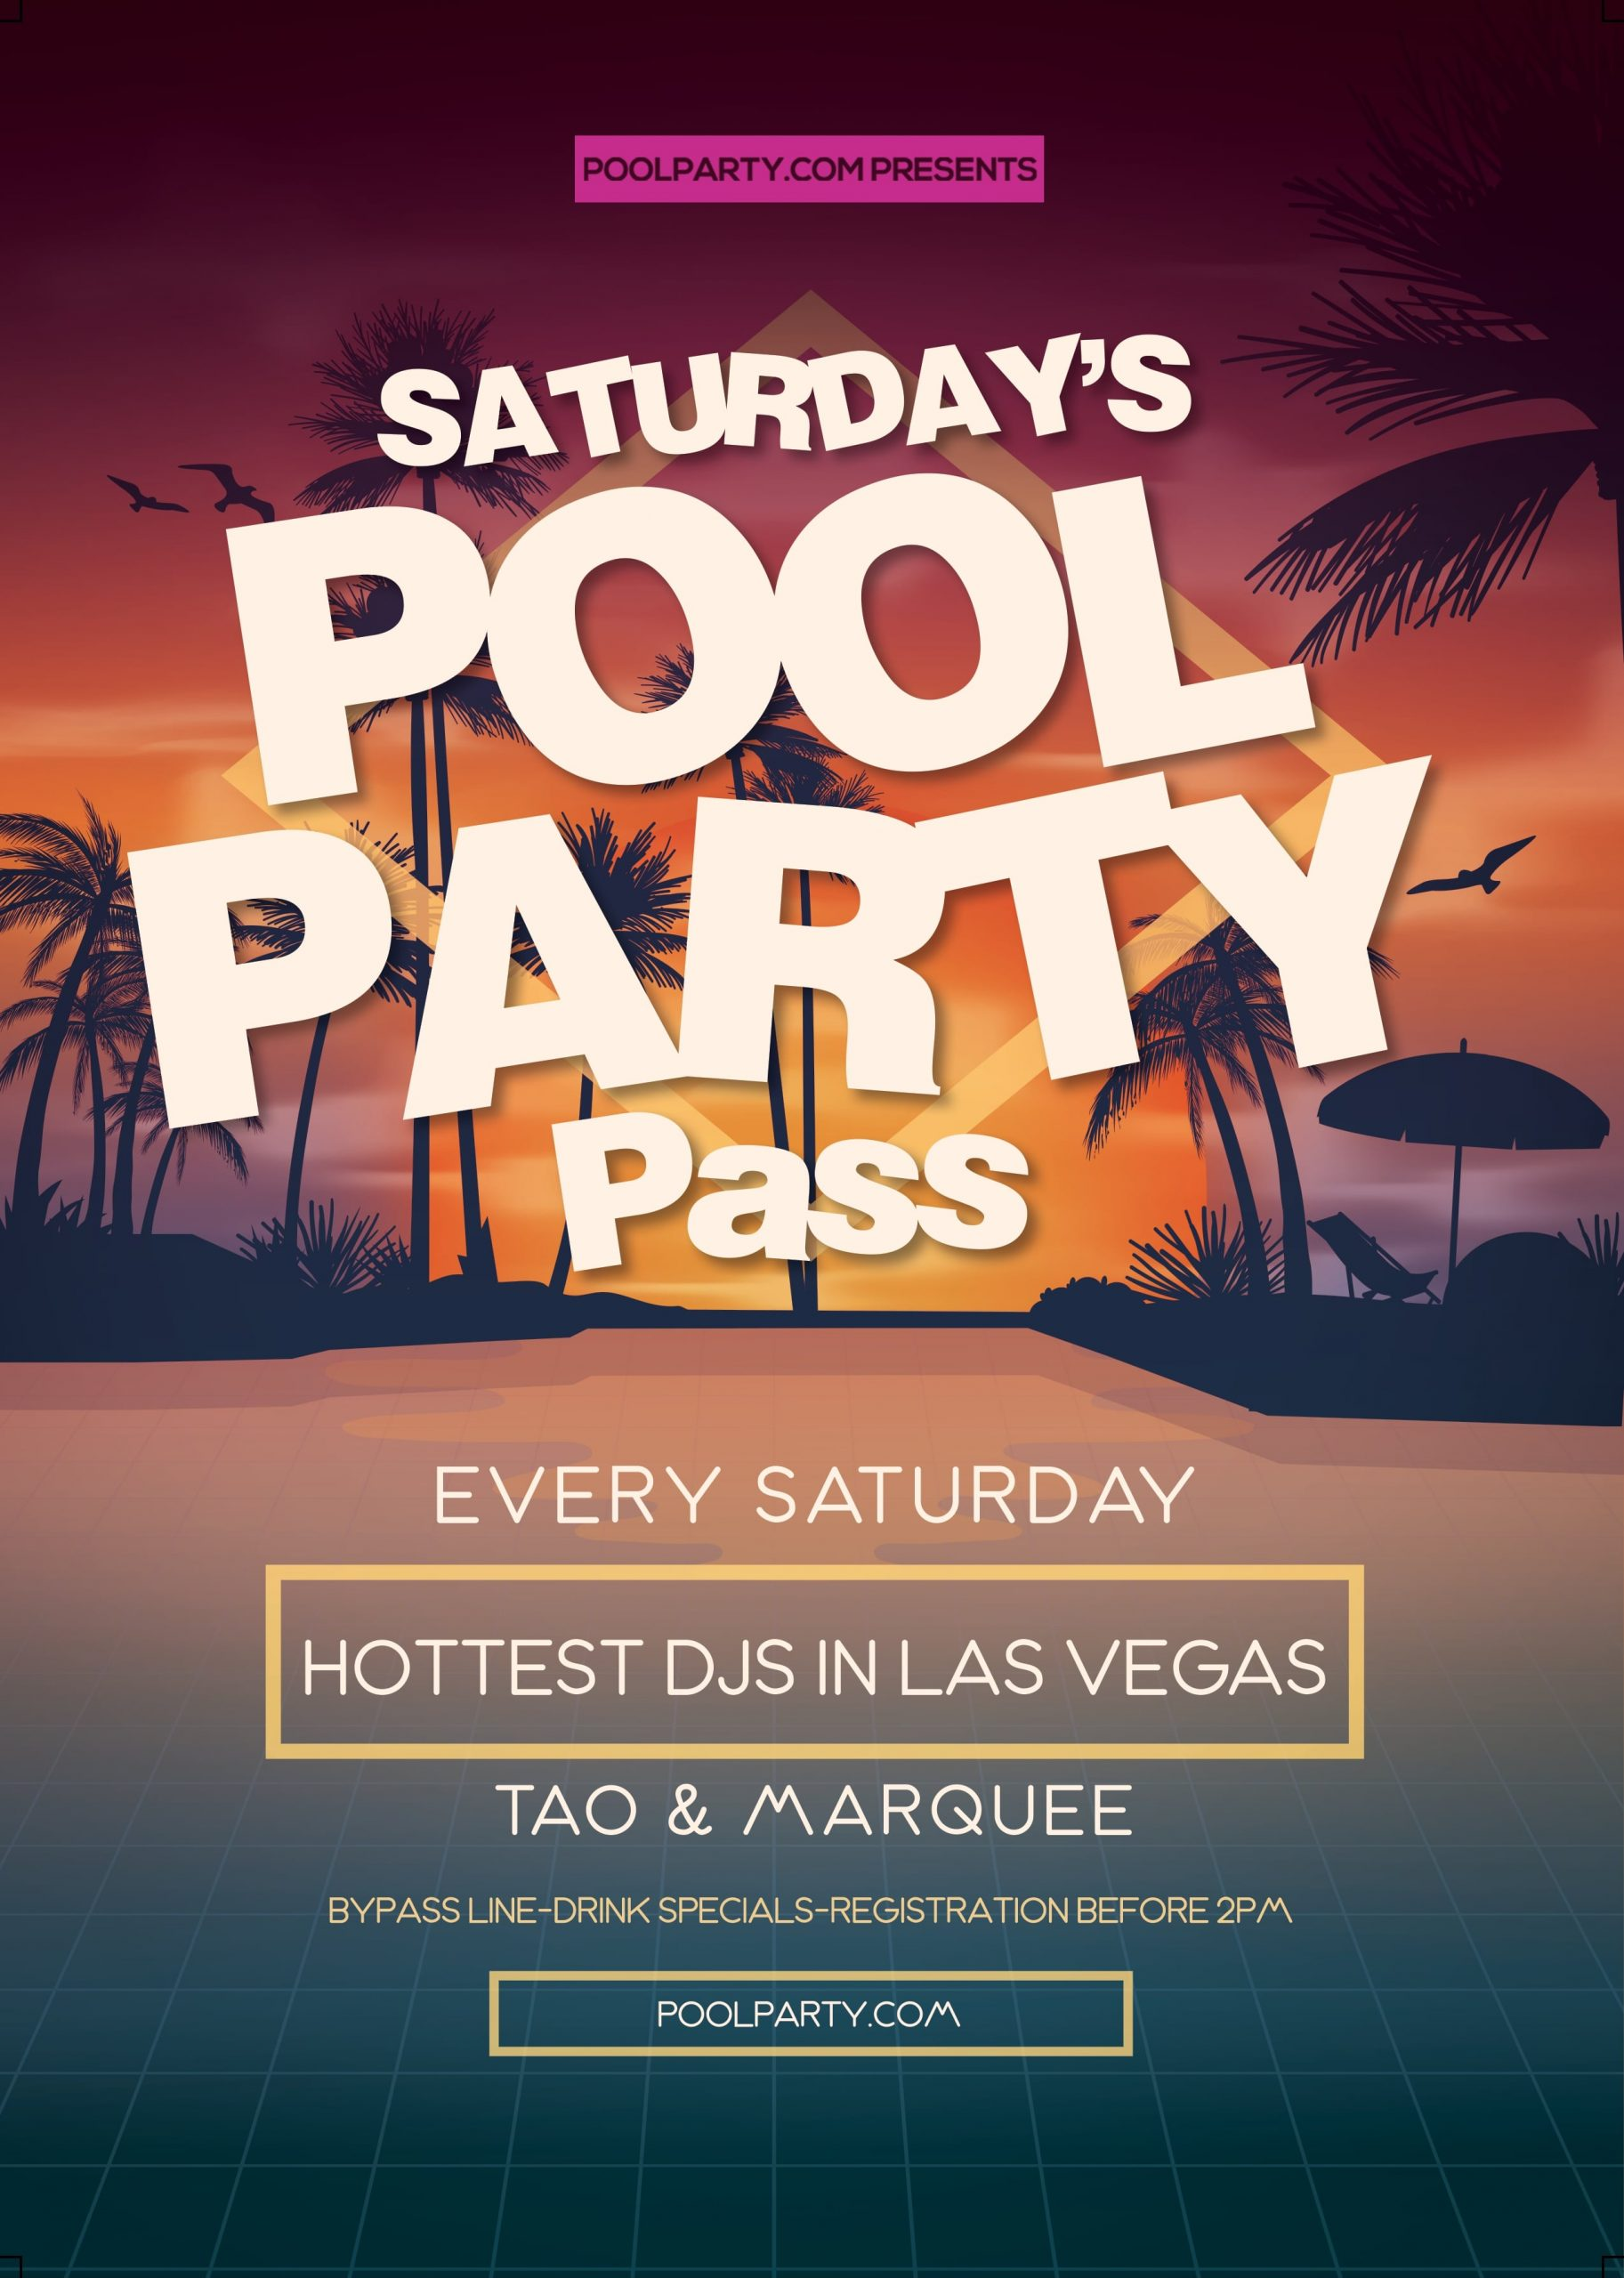 Saturday's Pool Party Pass (July 4th 2020)